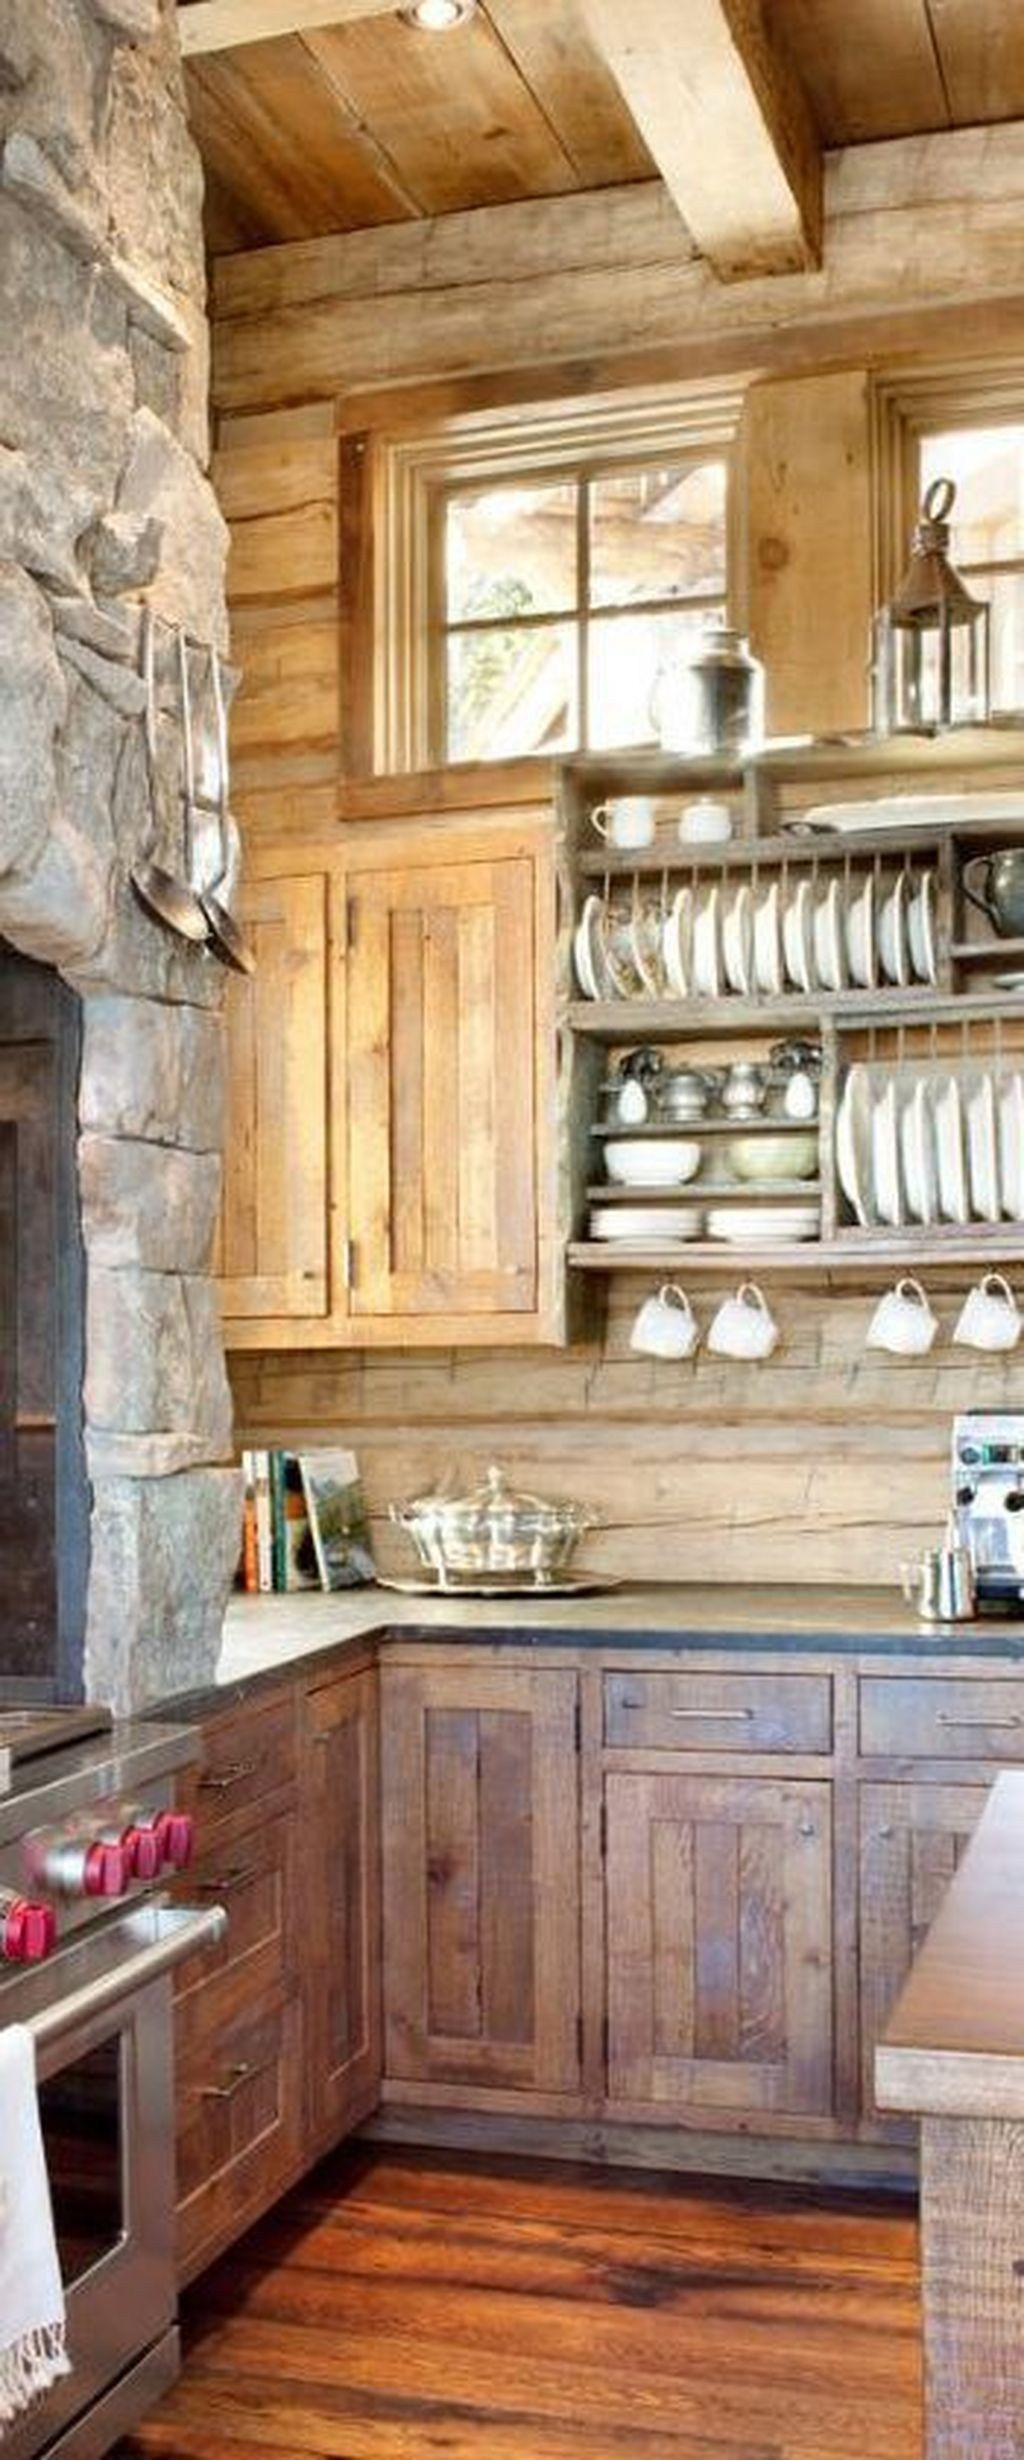 46 Inspiring Rustic Country Kitchen Ideas To Renew Your ... on Rustic:mophcifcrpe= Cottage Kitchen Ideas  id=86973